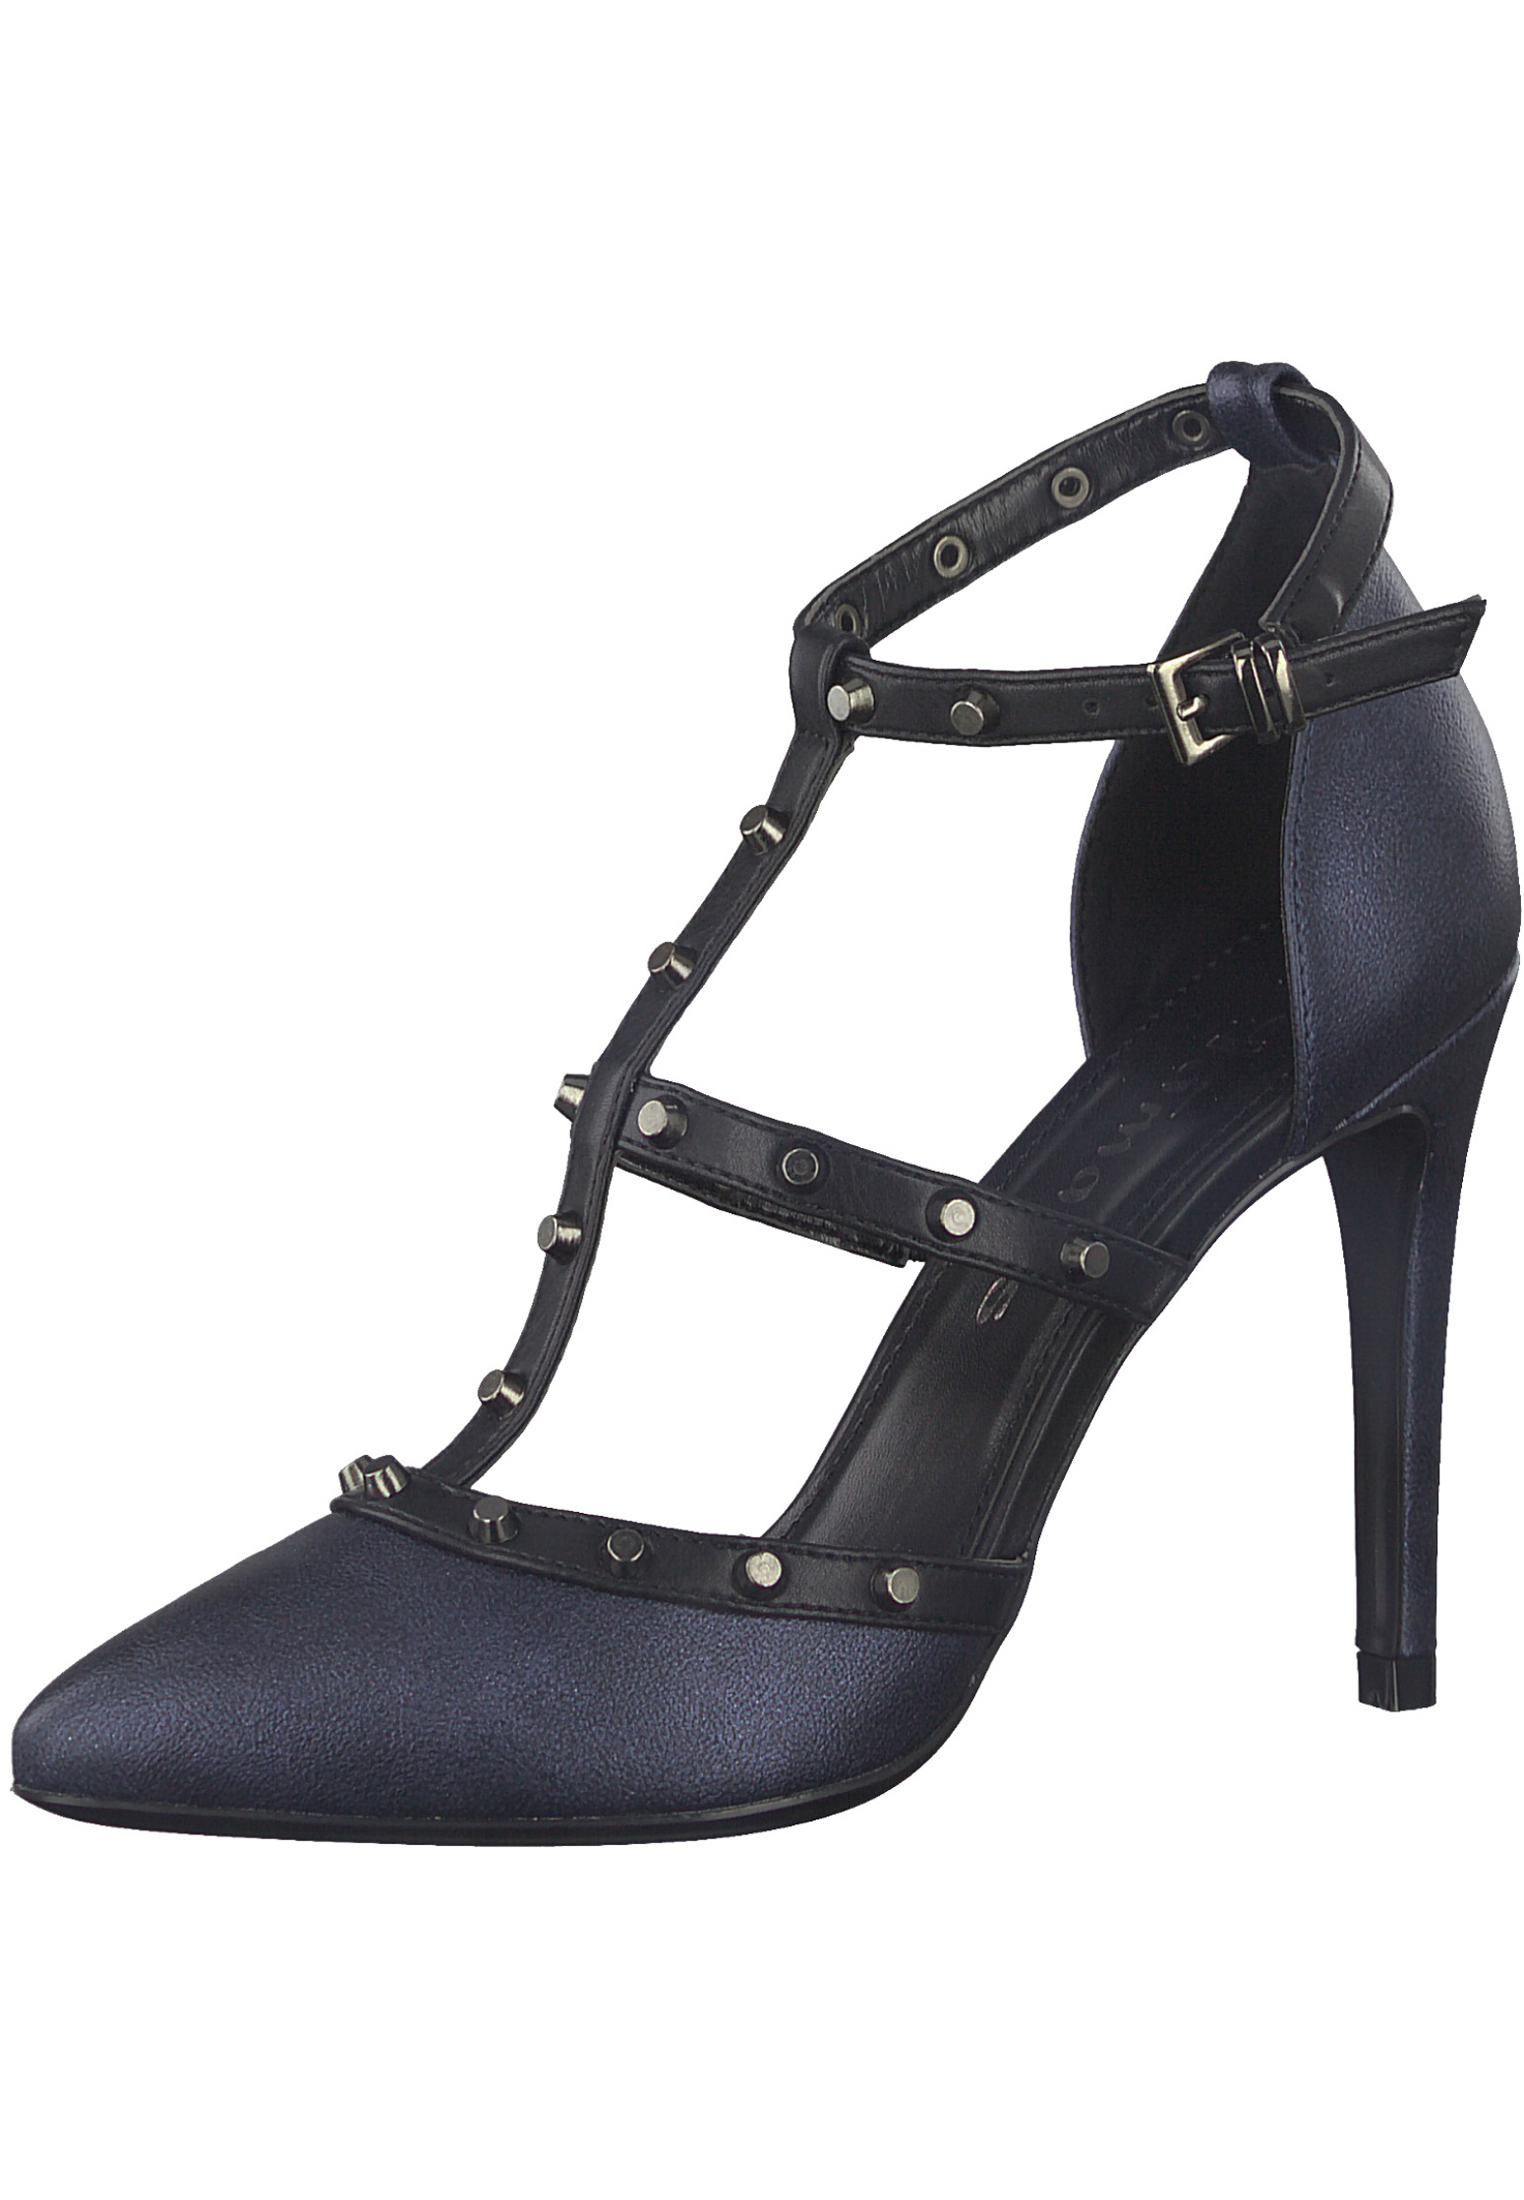 a6802851e0ded0 Tamaris Trend 1-24409-21 824 Damen Navy Metallic Blau Riemchen Pumps  High-Heel Stiletto